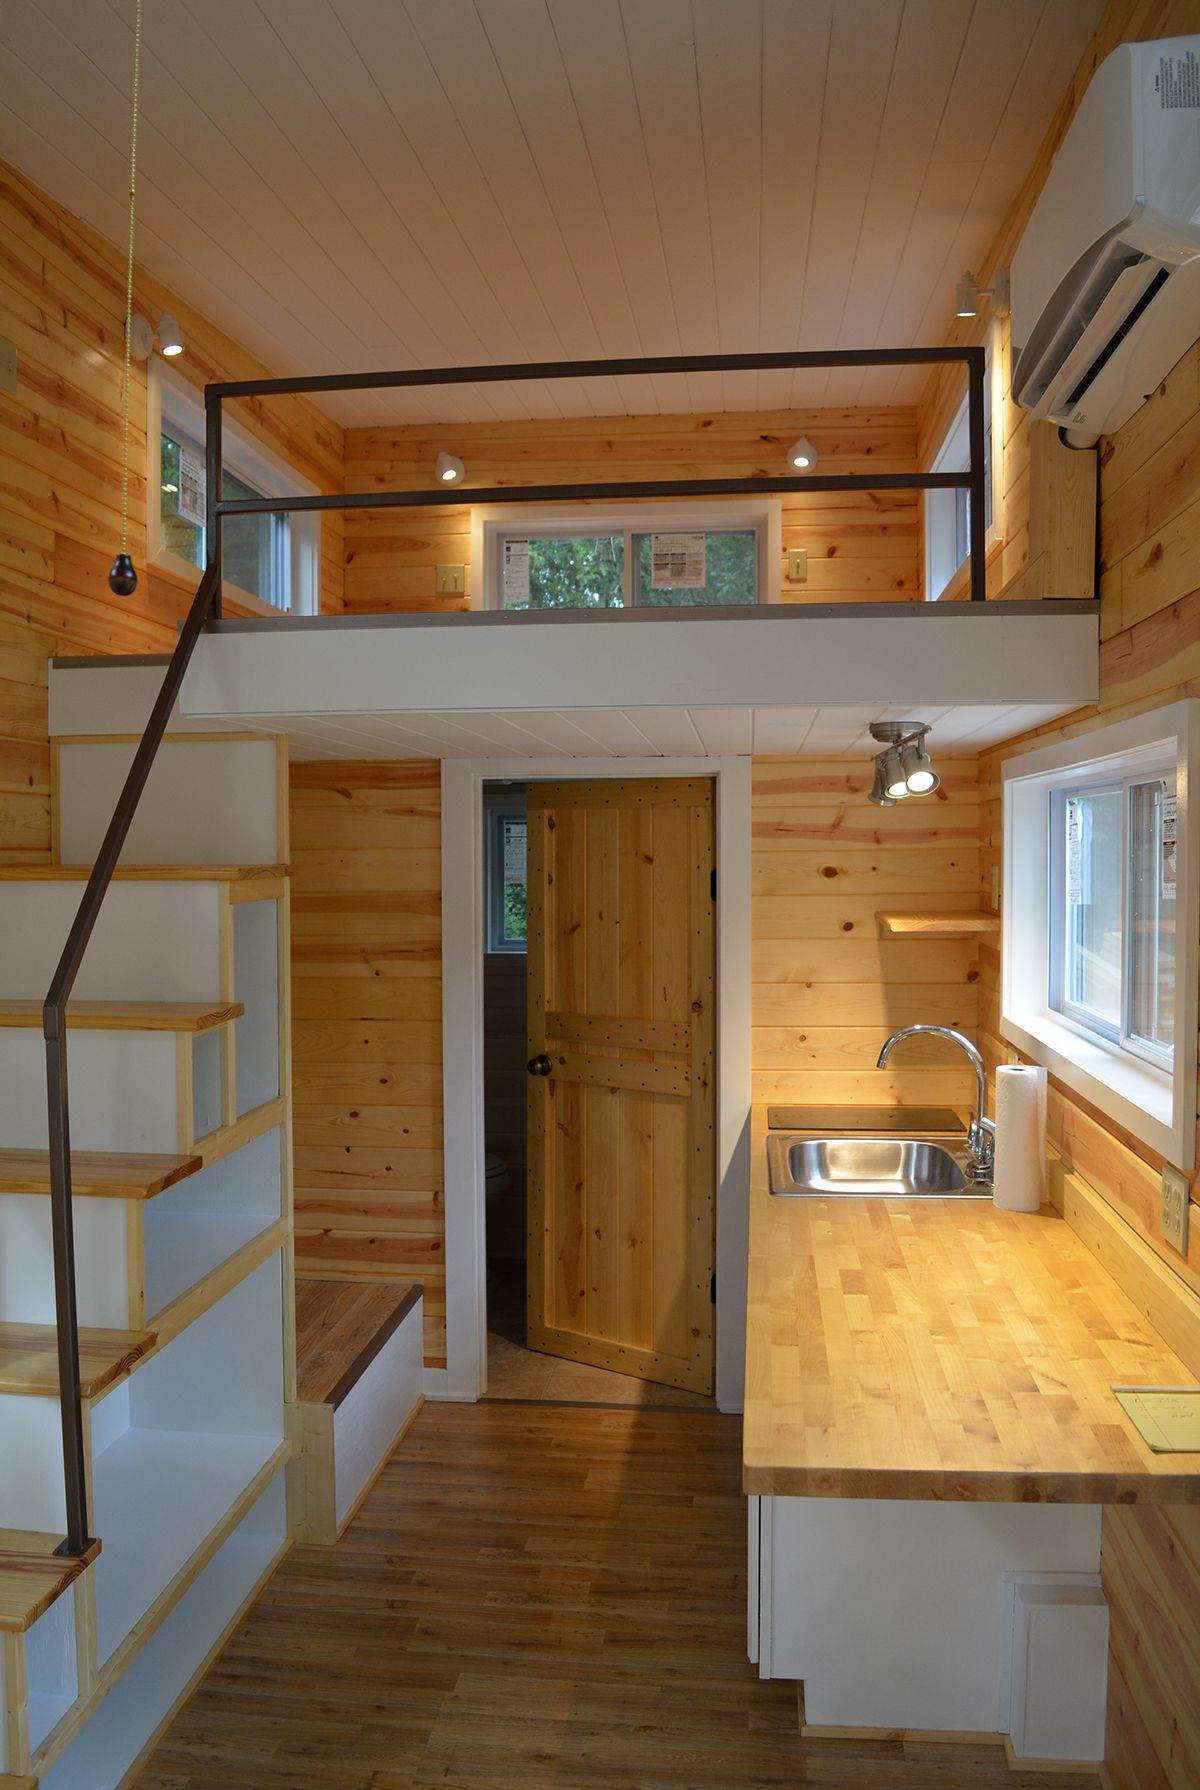 Functional Tiny House - Tiny House For Sale In Opp, Alabama In 2020